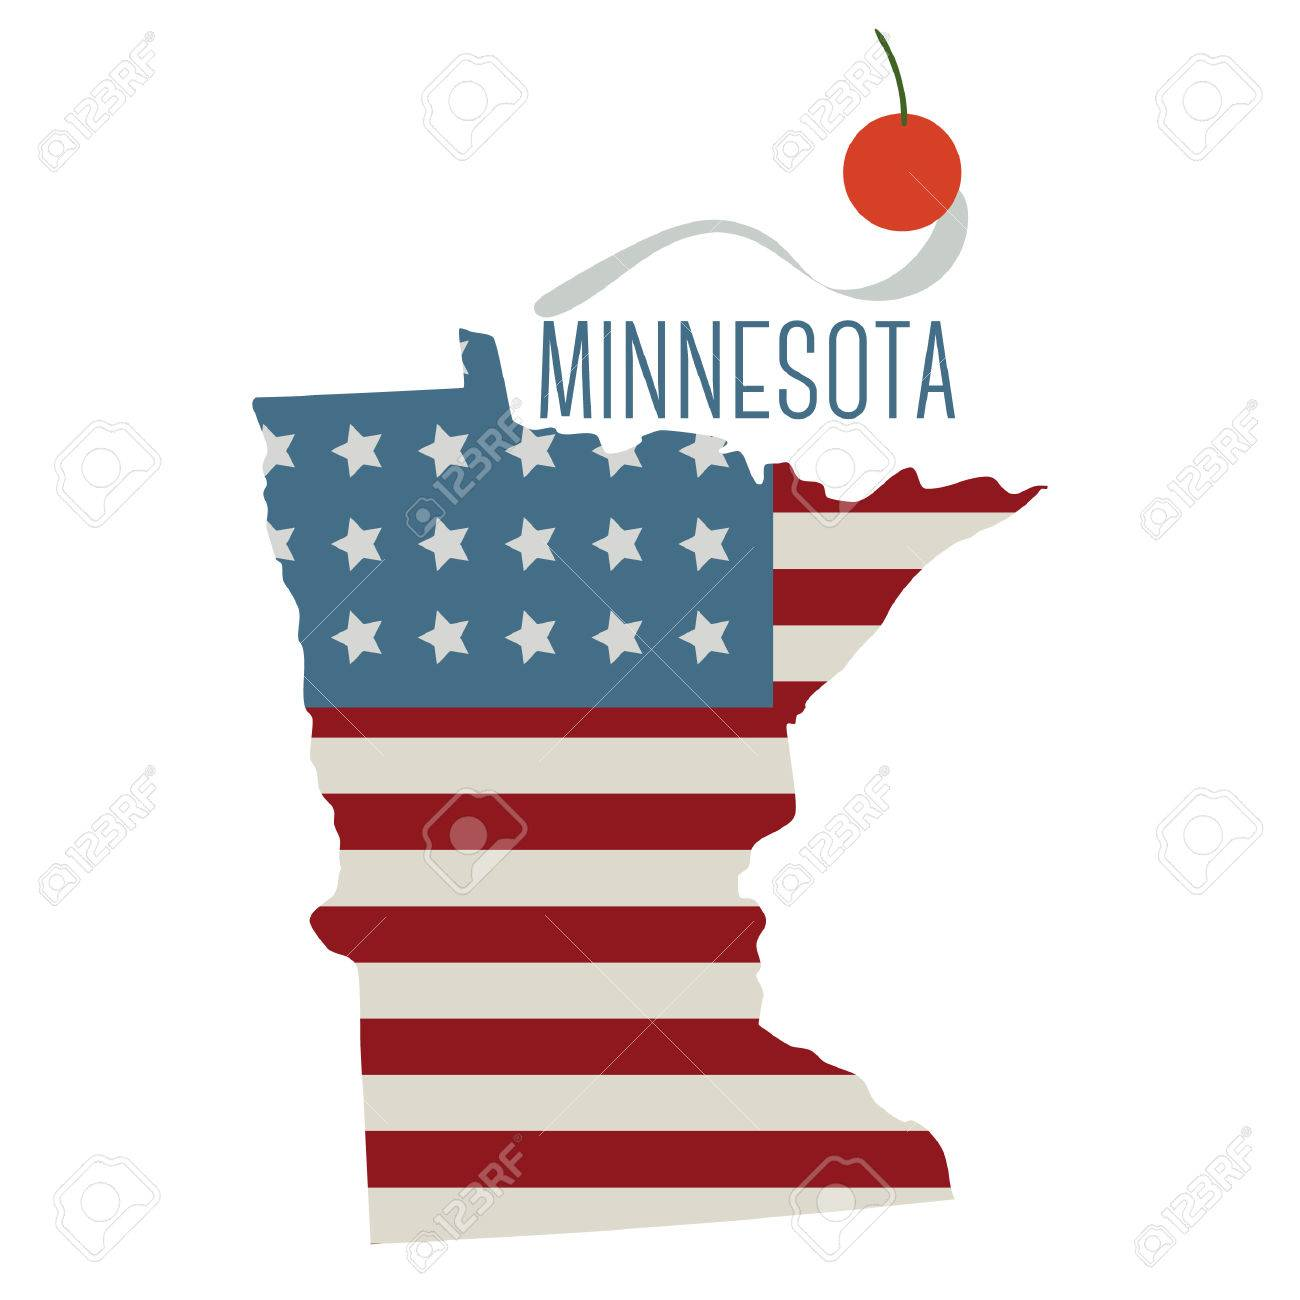 Minnesota State Map With Spoon Bridge And Cherry Royalty Free